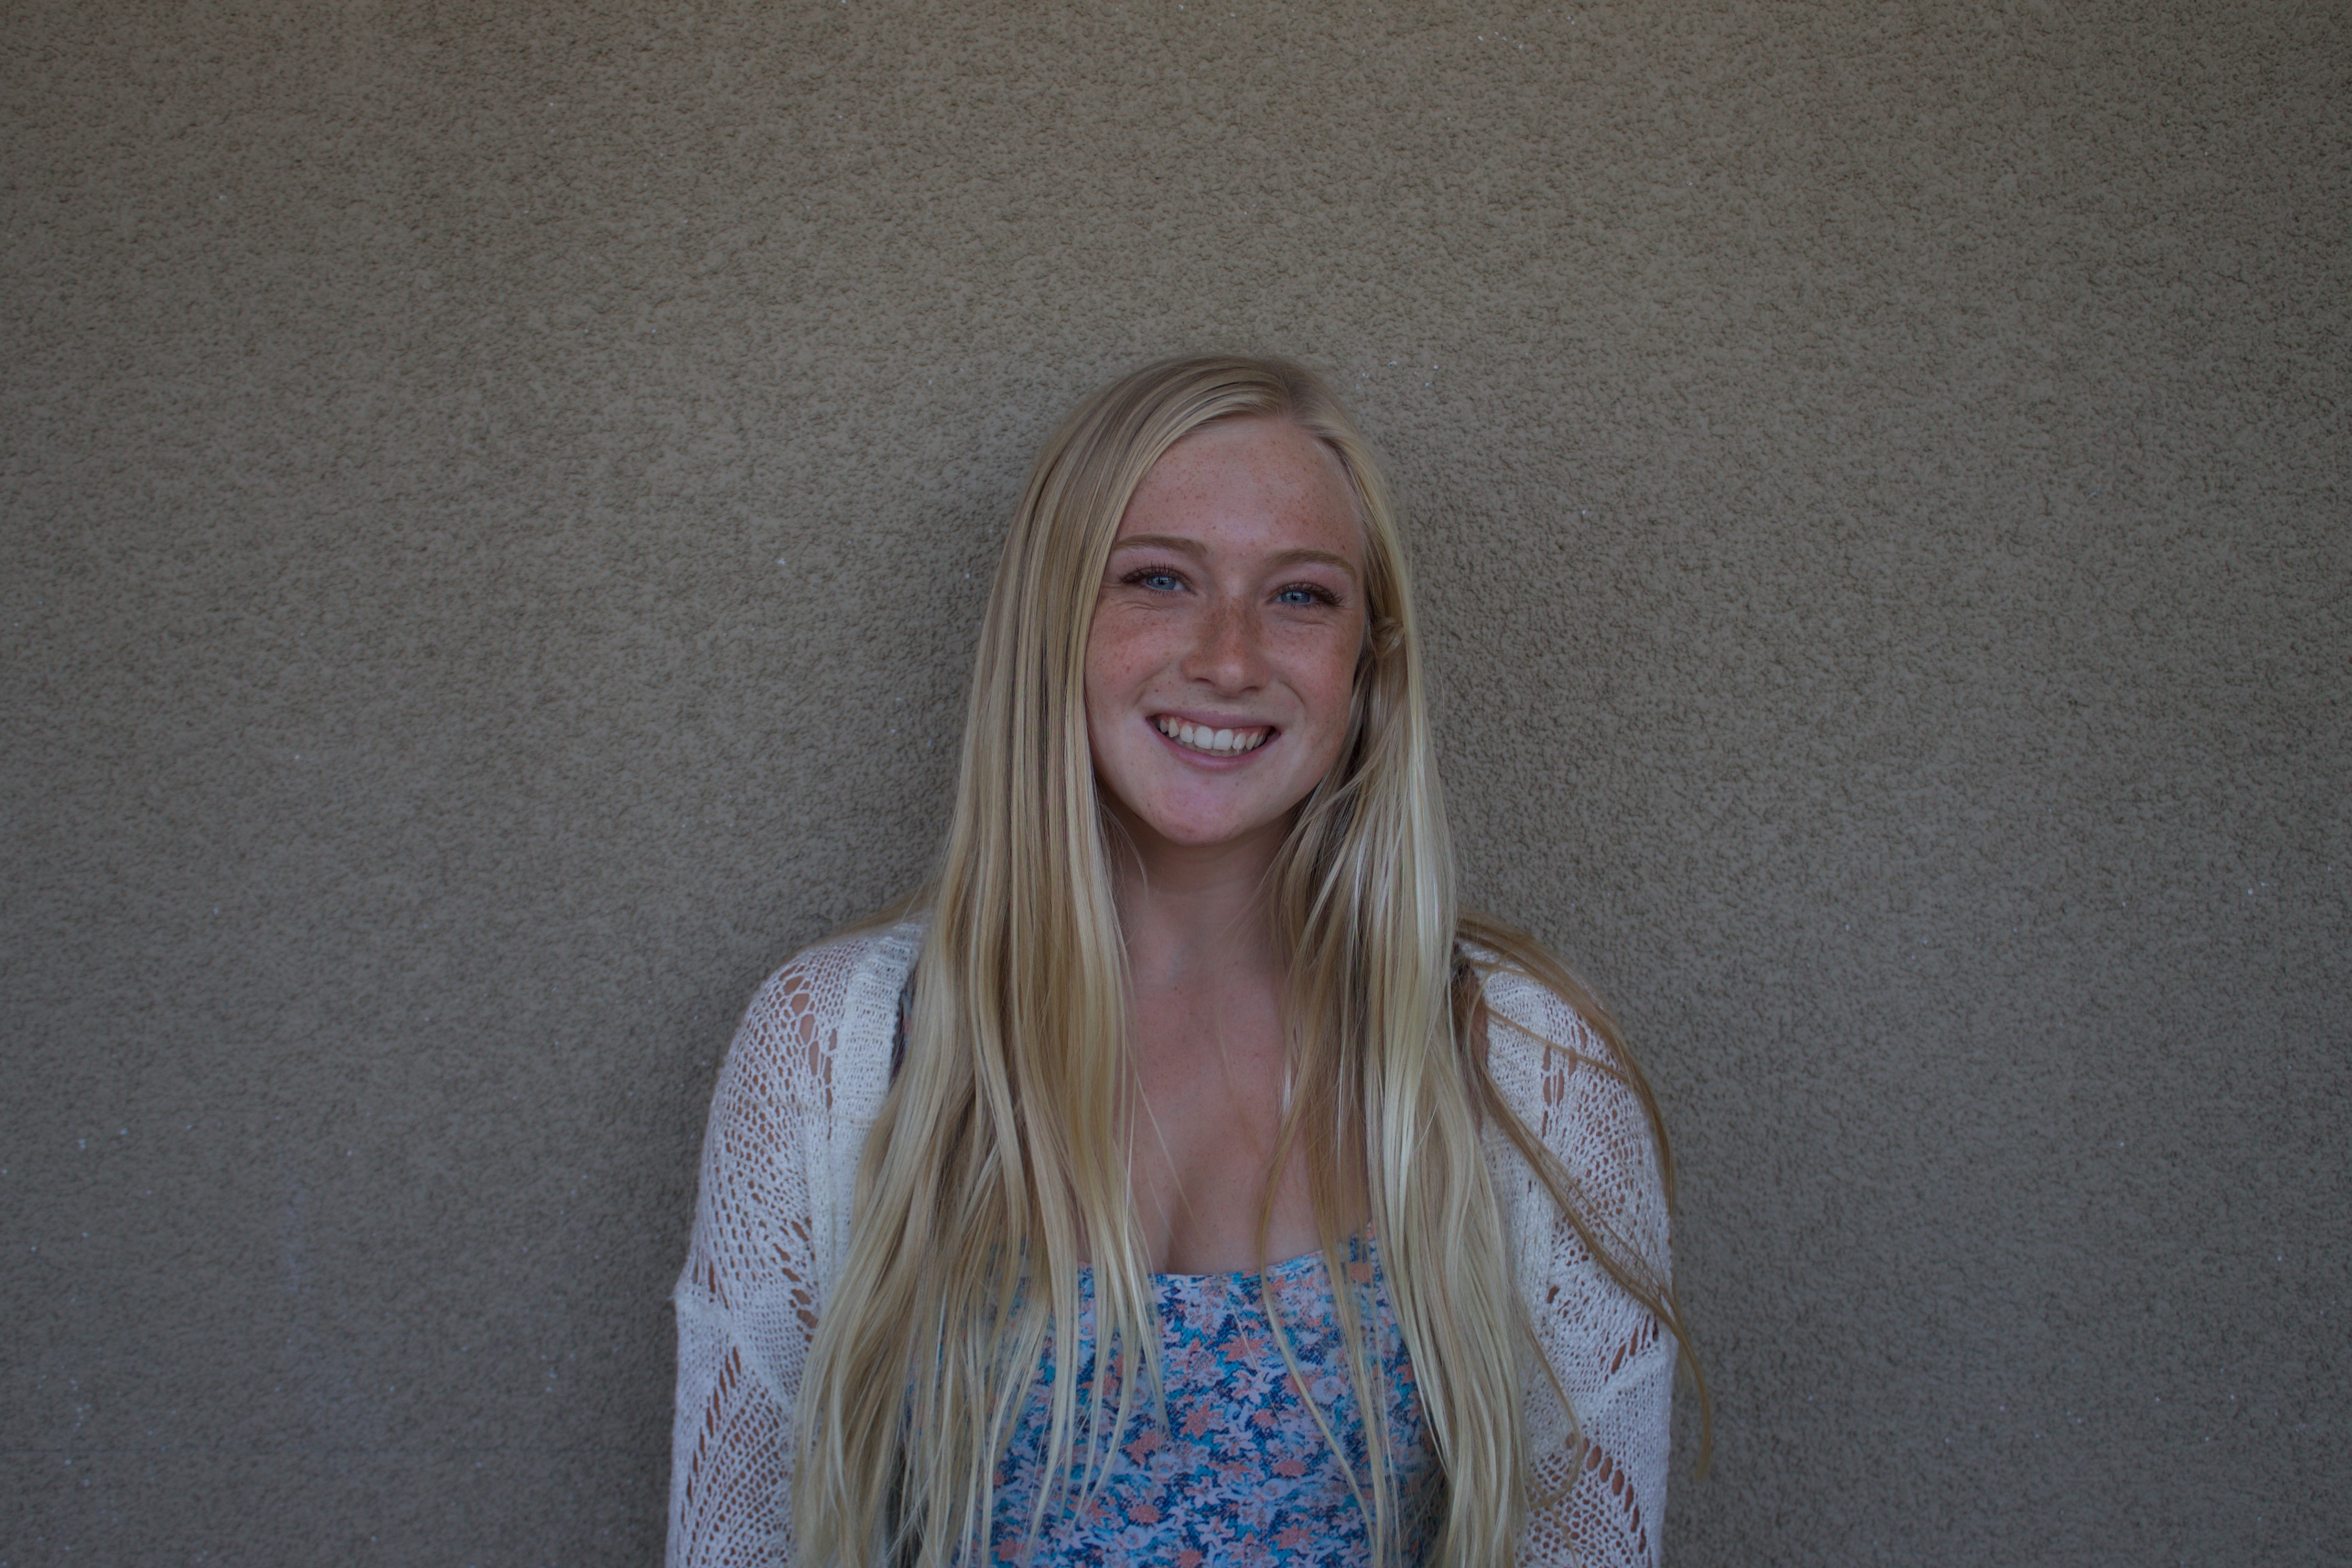 Camille Fowler is a senior this year, and it is her second year on El Gato. A resident of the Santa Cruz mountains, she spends most of her time complaining about how much time she spends driving. In her free time Camille enjoys playing with her dogs, wearing too much grey, and watching YouTube makeup tutorials.